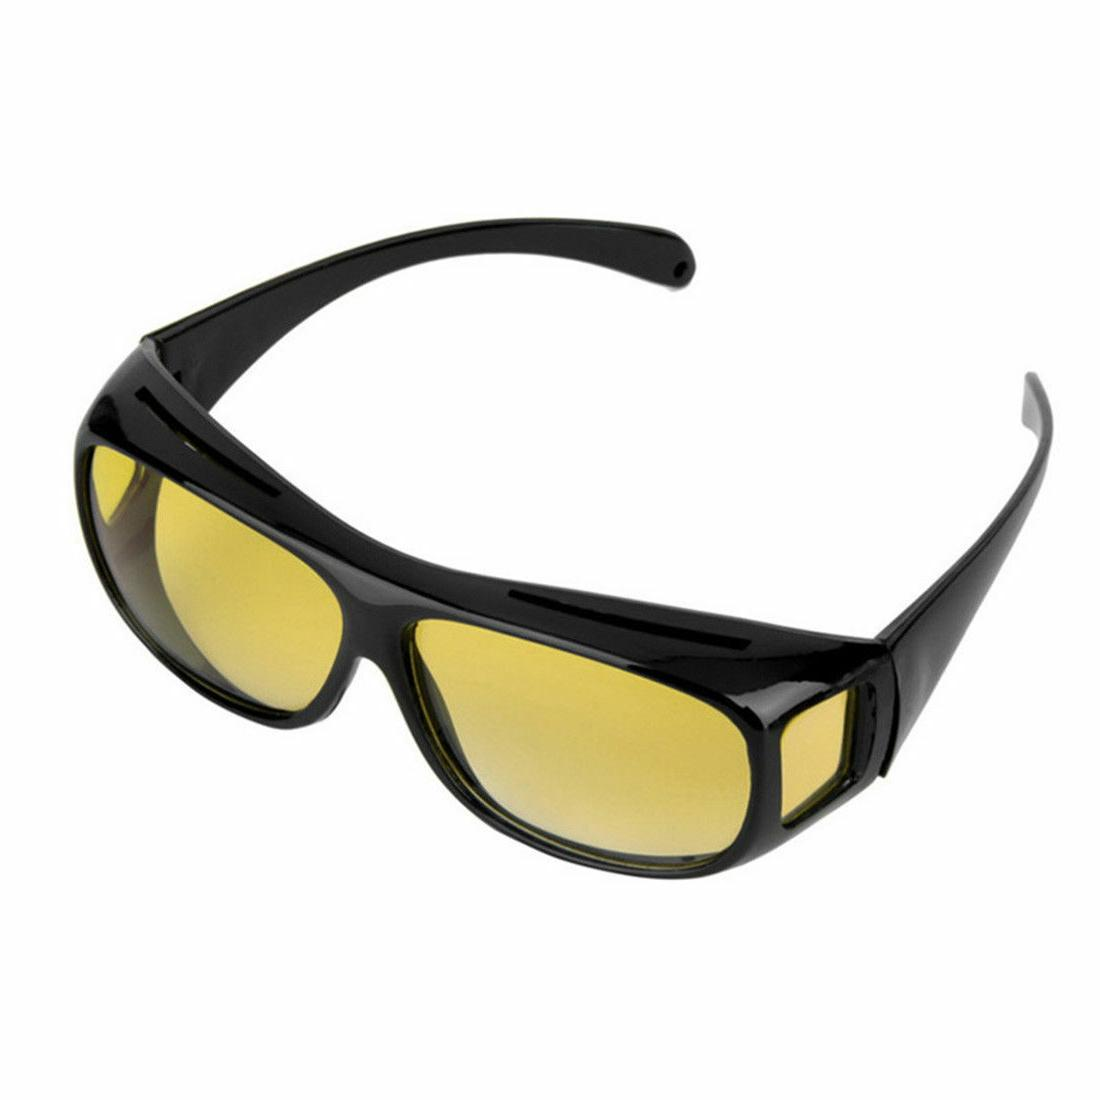 2 Pair Fits OVER Glasses Seen on